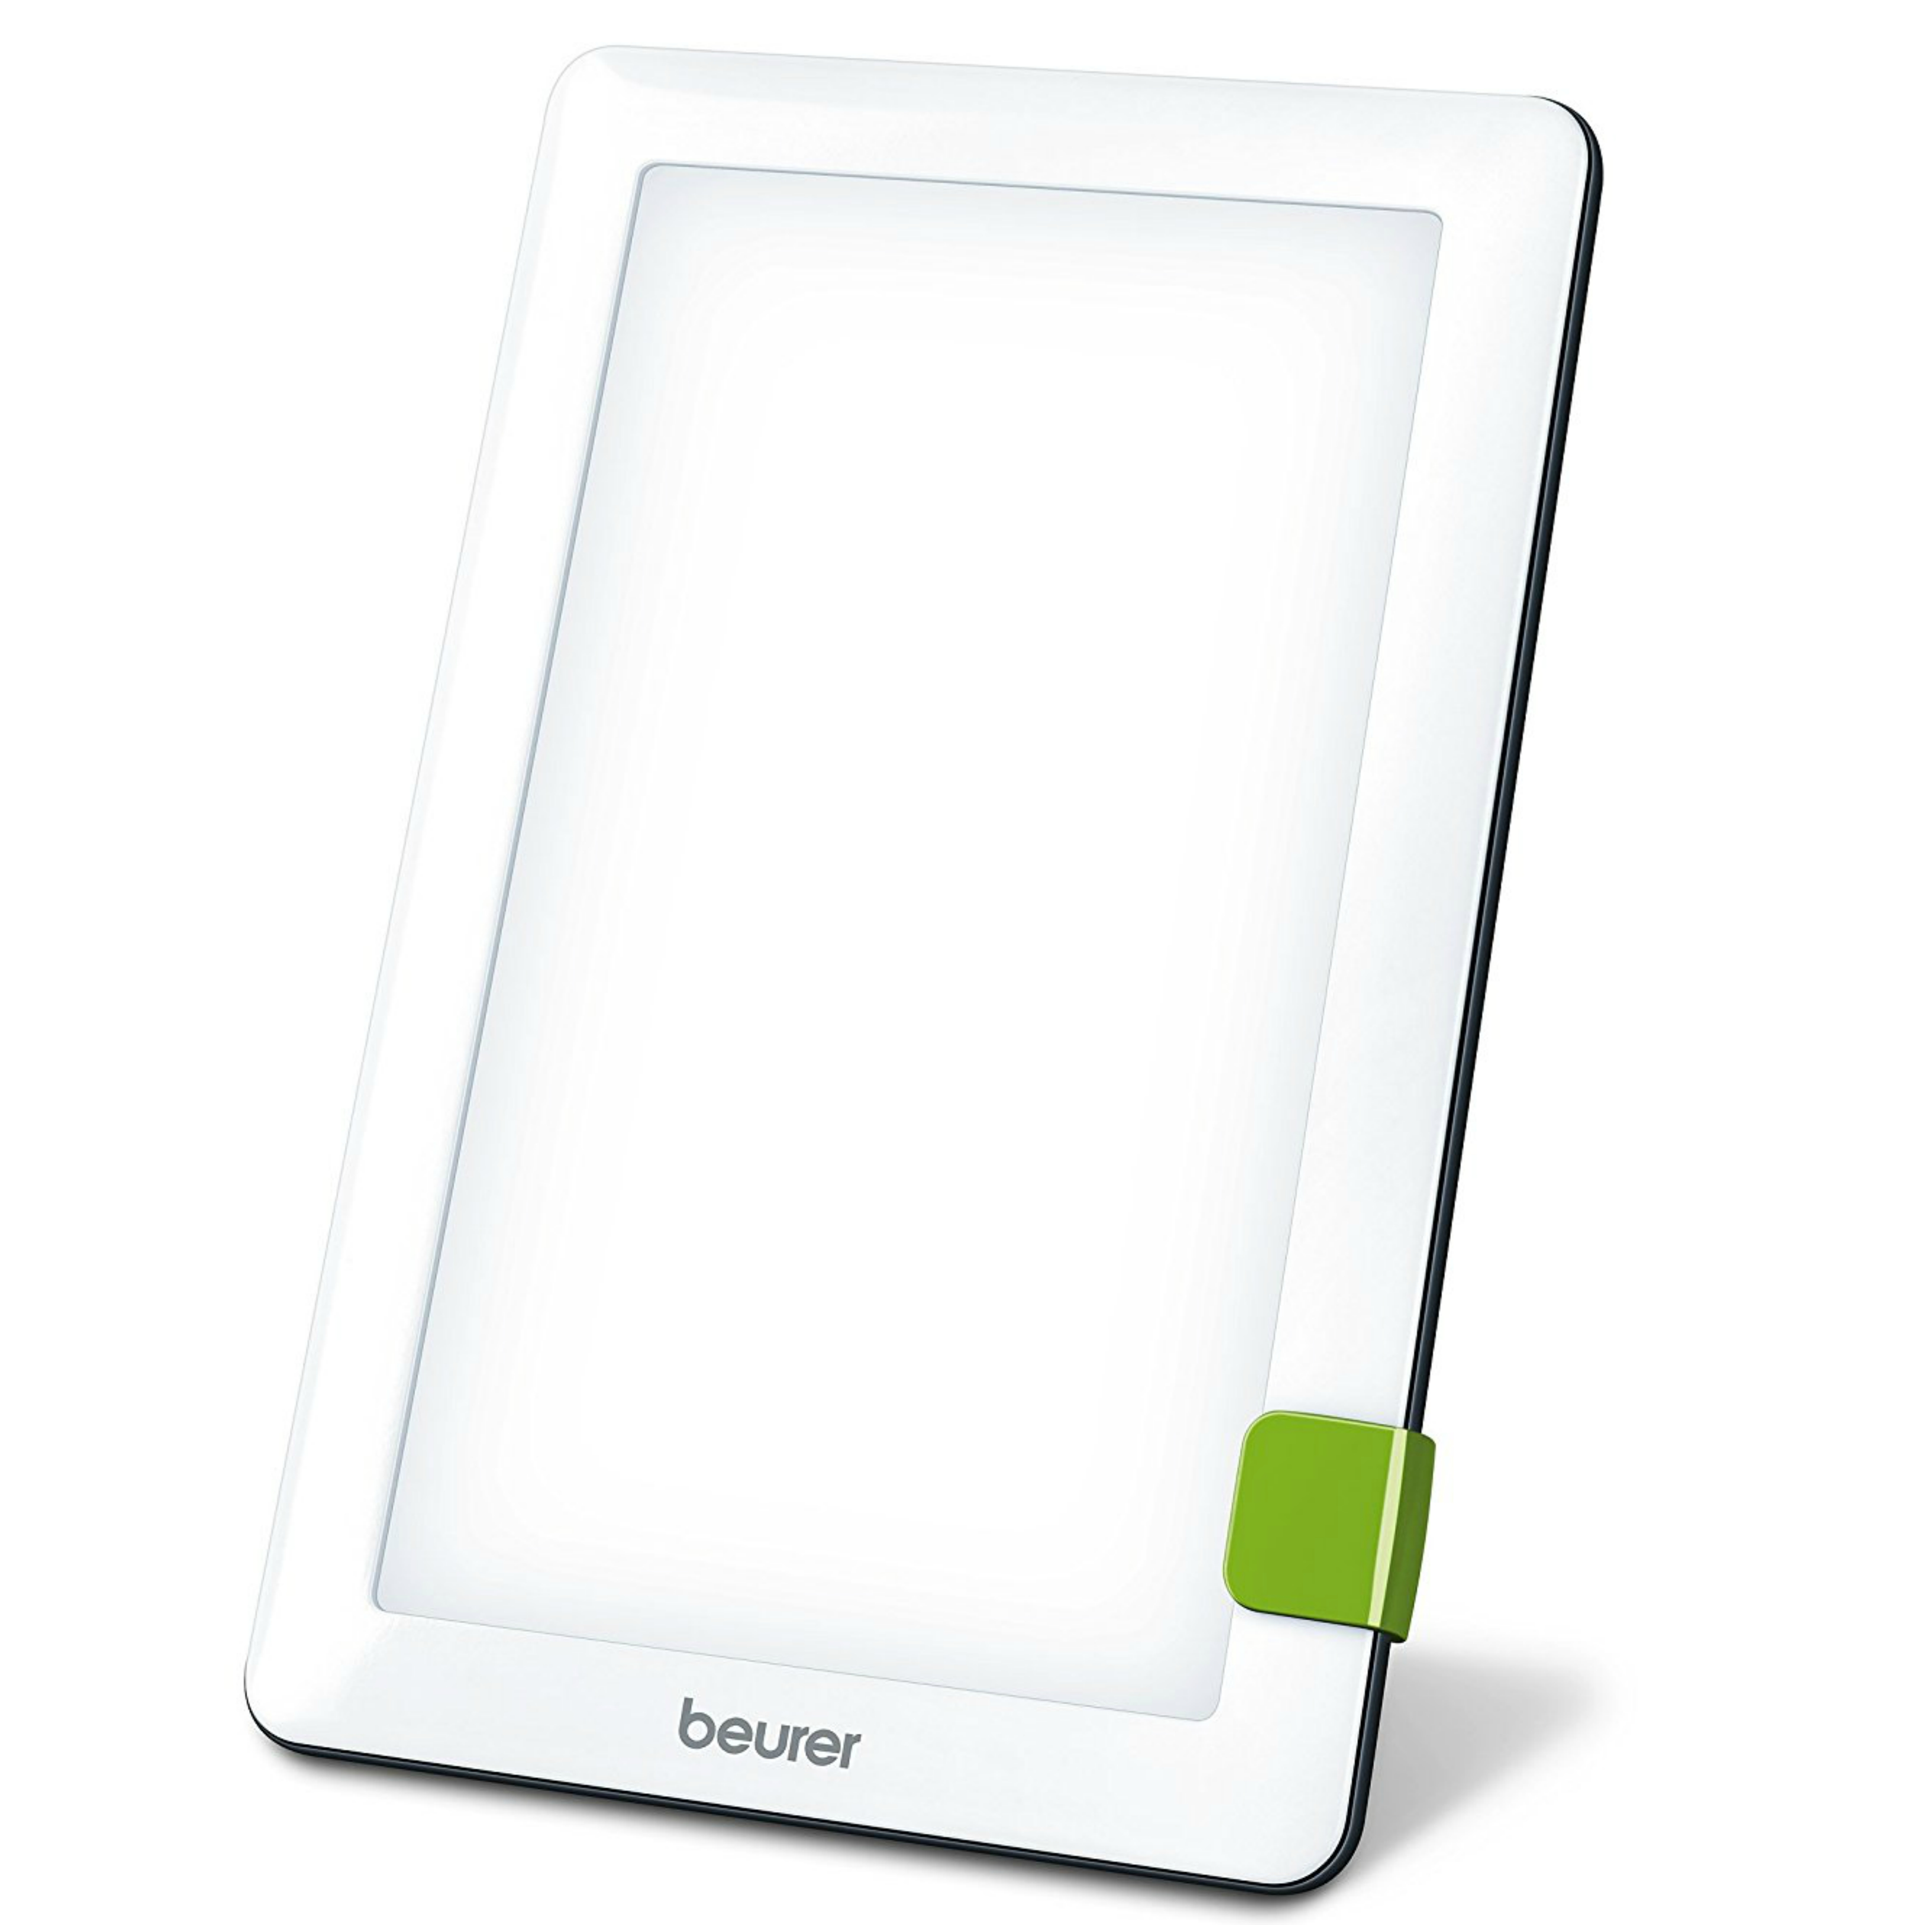 Beurer New TL30 Ultra Portable Daylight Lamp|Body Light Therapy|S.A.D Relief|LED